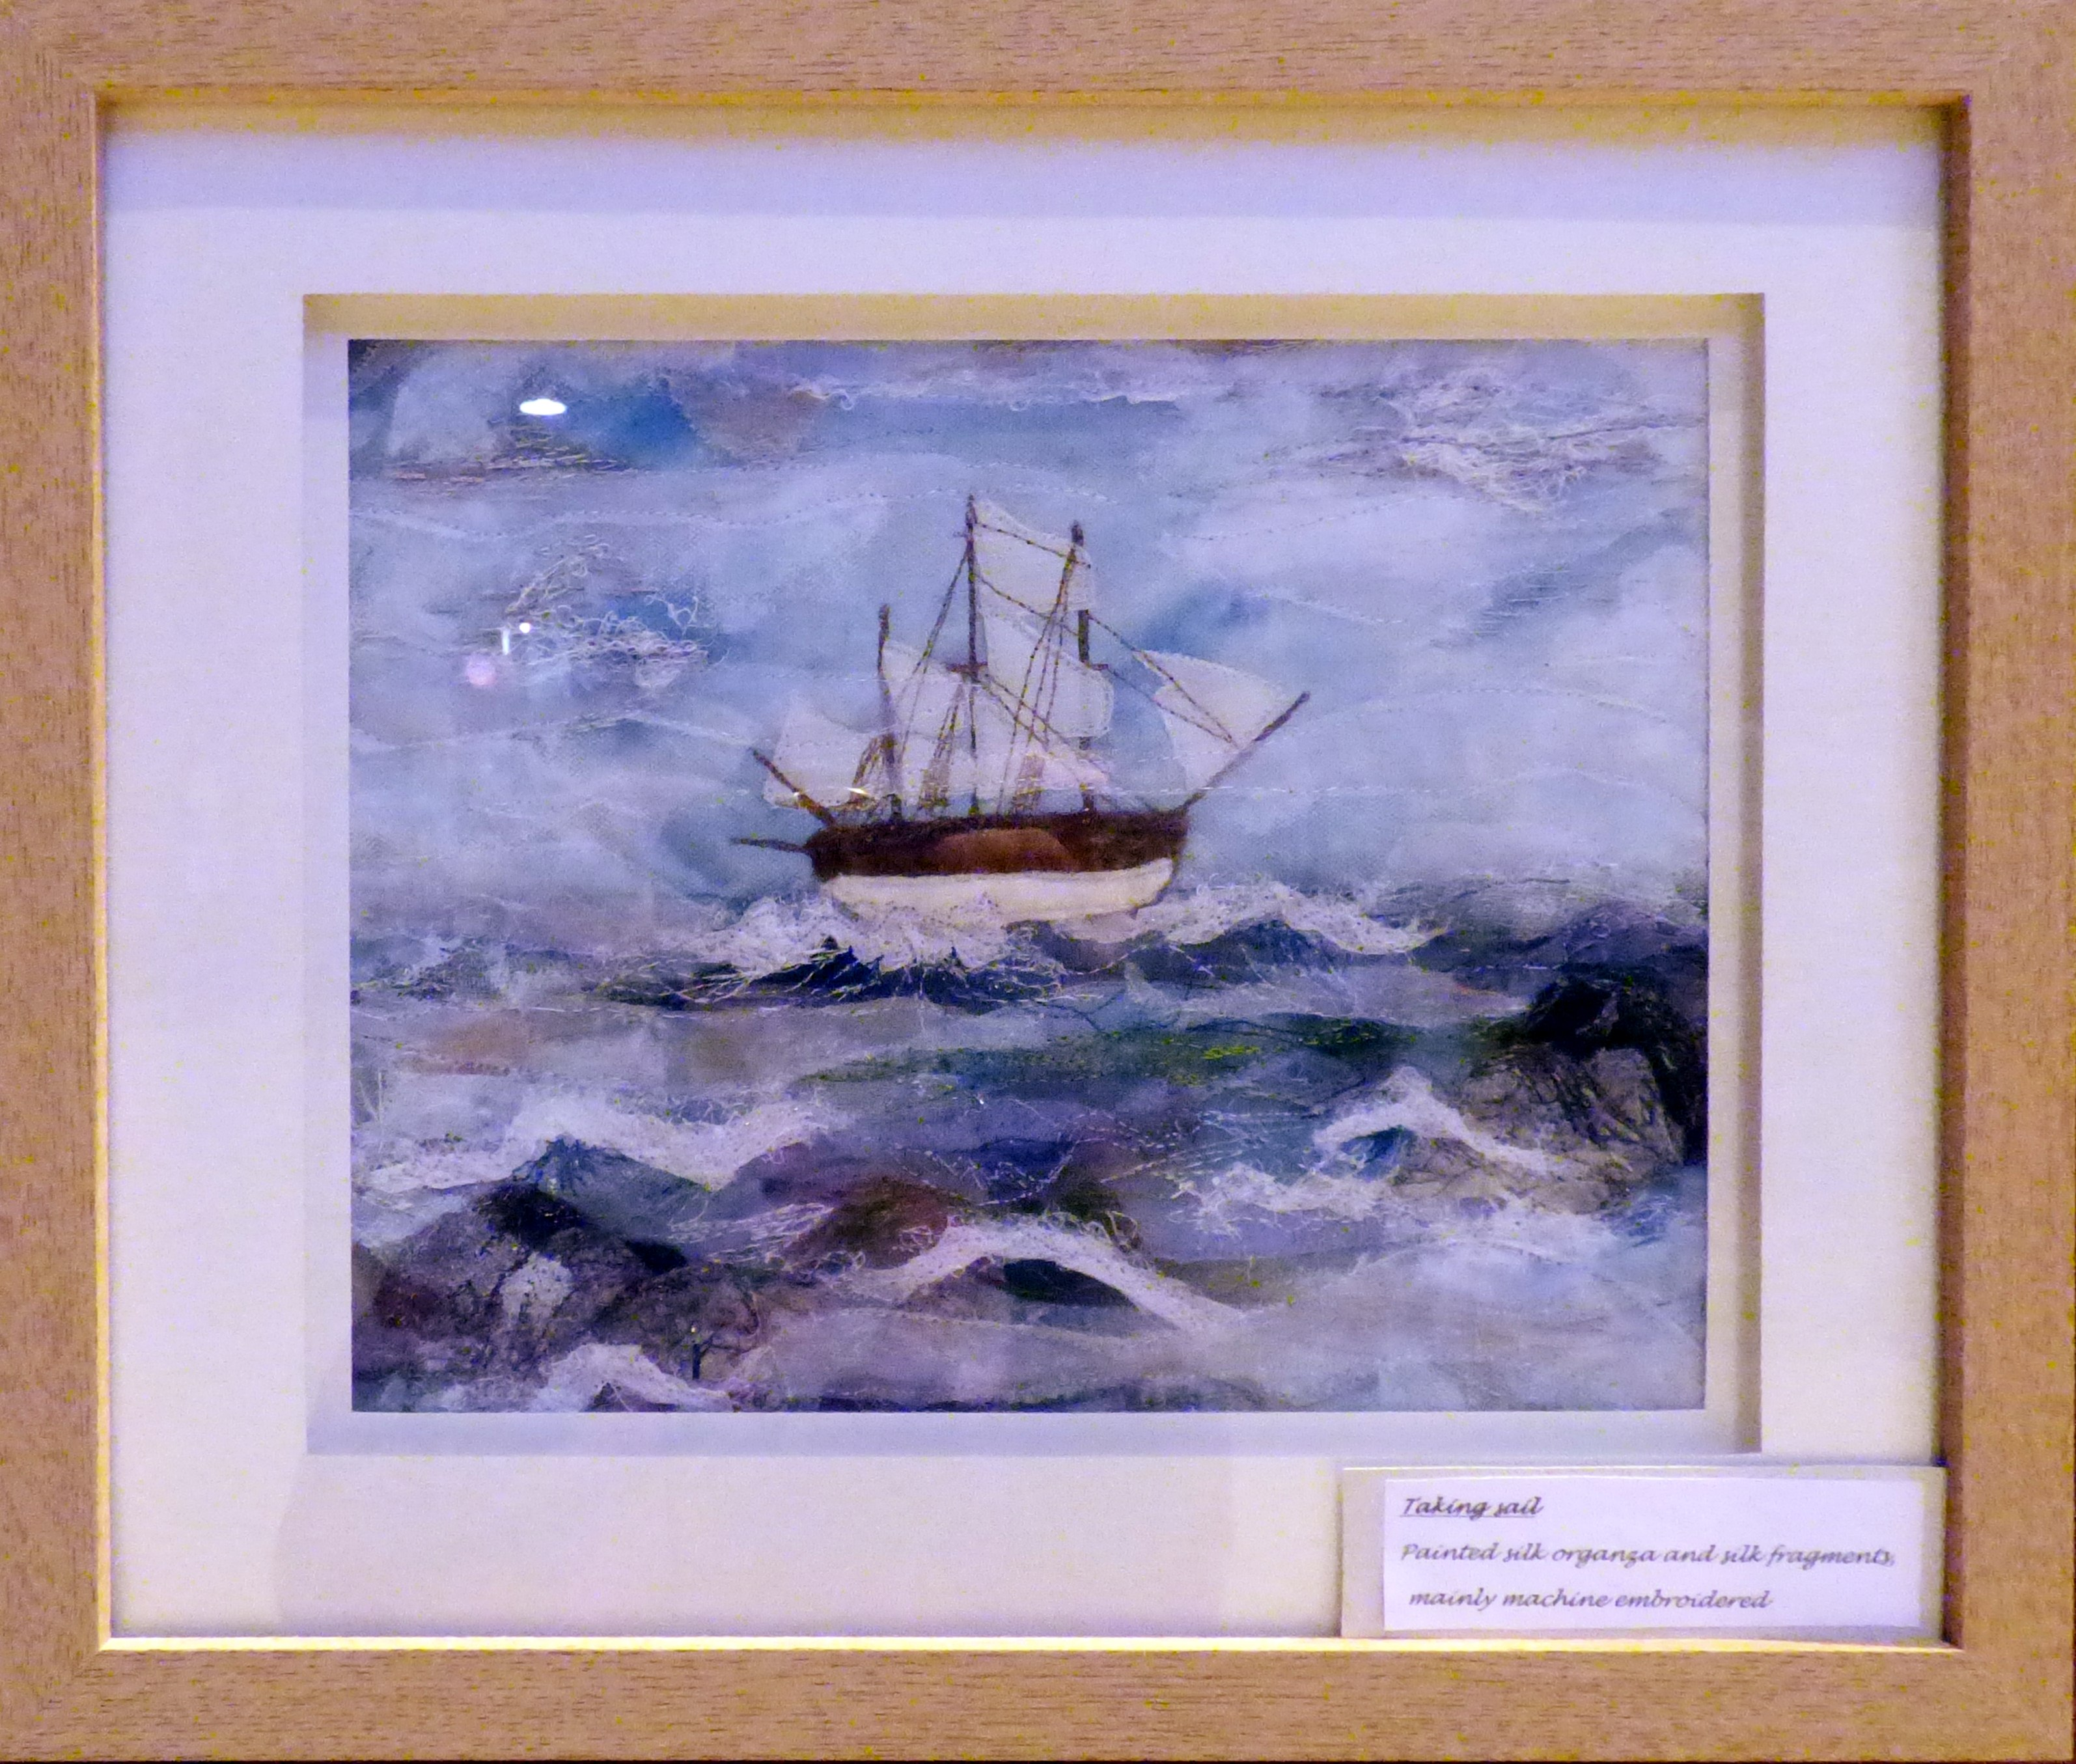 TAKING SAIL by Mal Ralston, machine and hand embroidery,  Endeavour exhibition, Liverpool Cathedral, Sept 2018